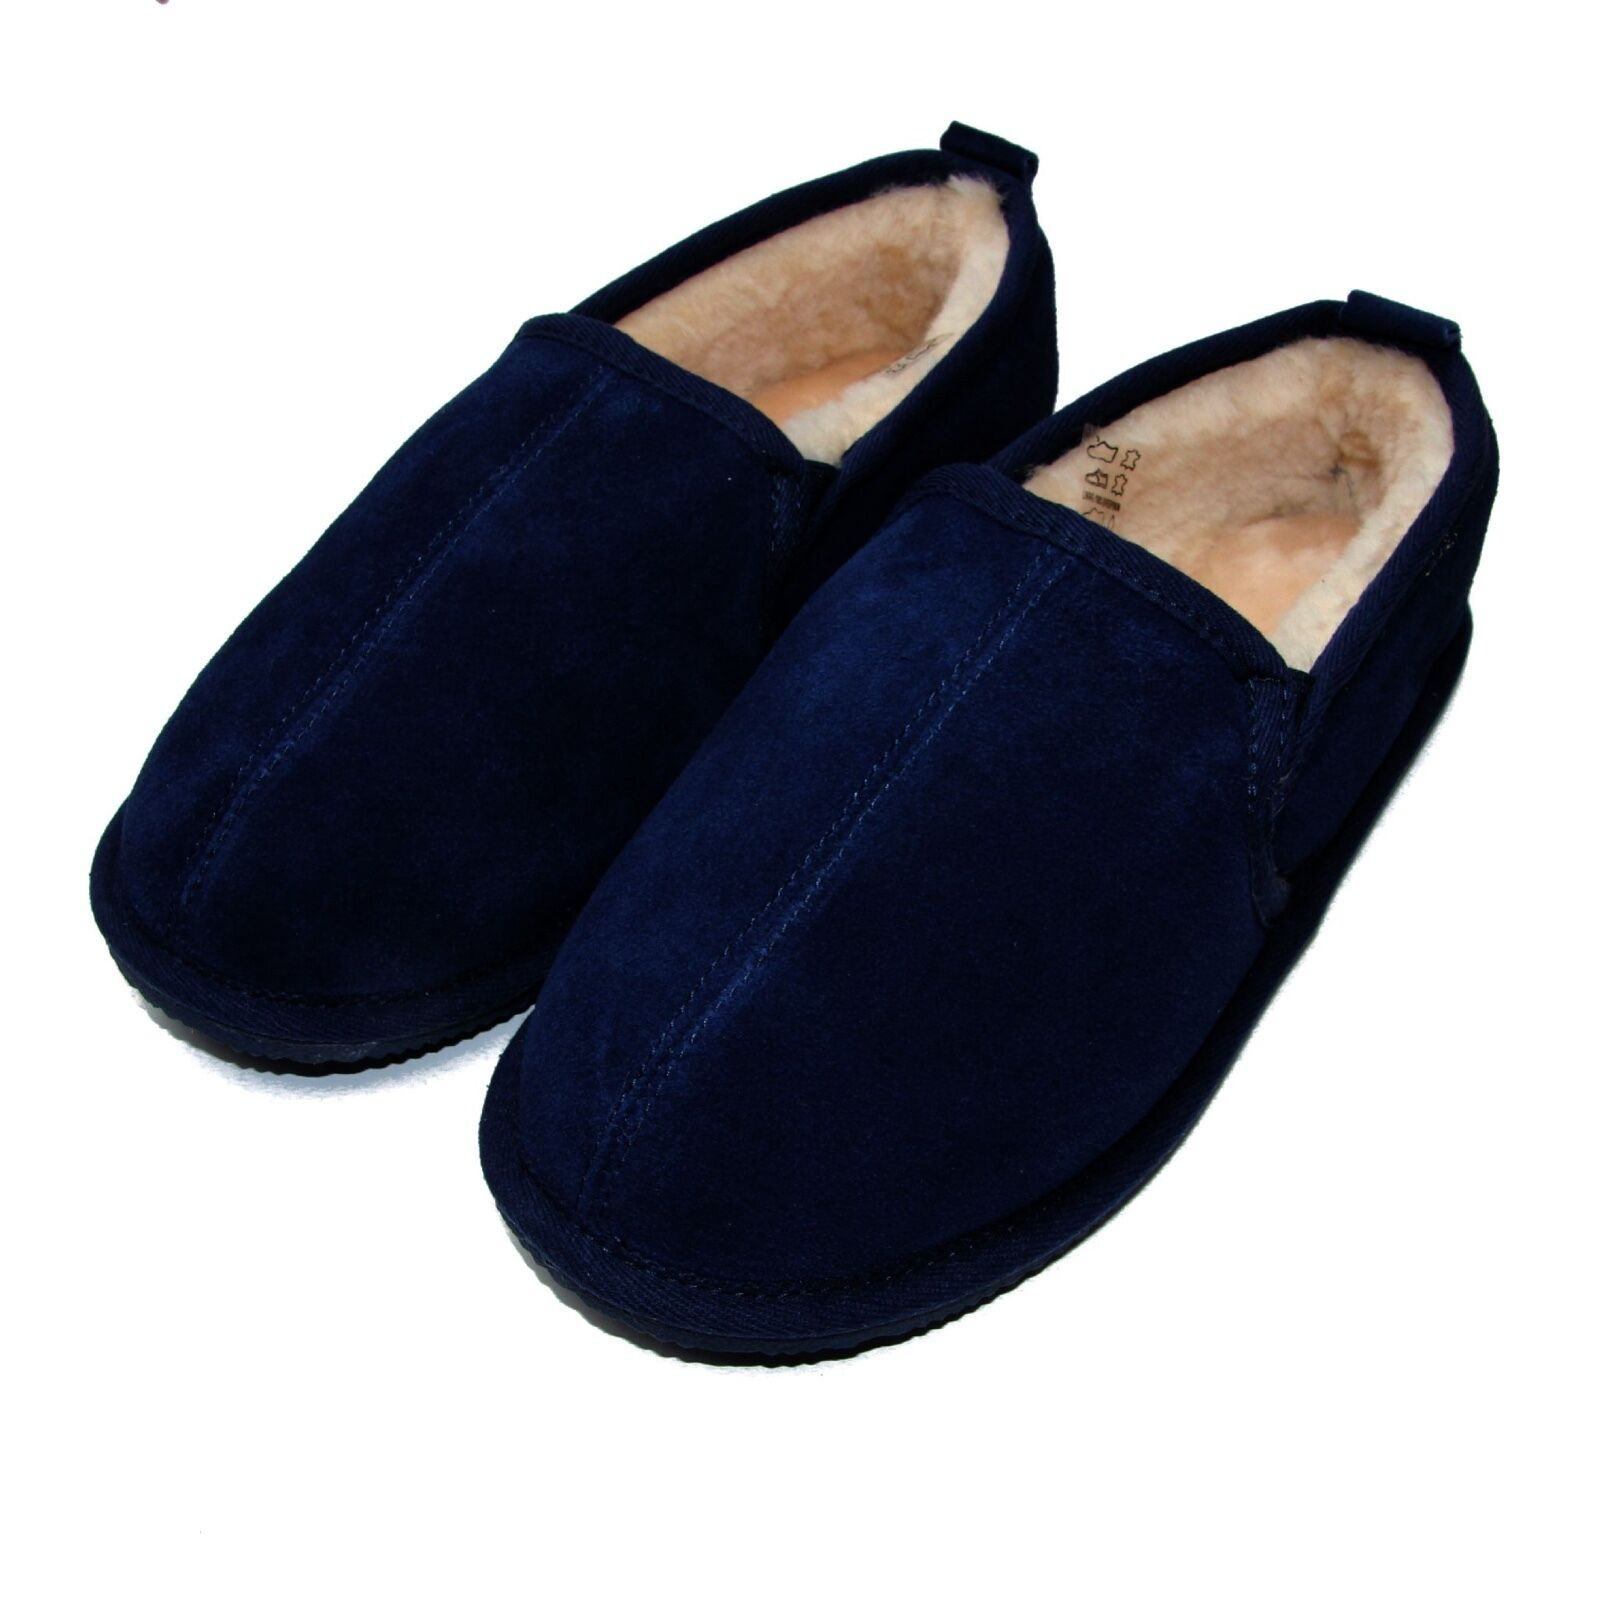 Deluxe Mens Soft Sole Sheepskin Slipper Boot - Navy - Free Returns